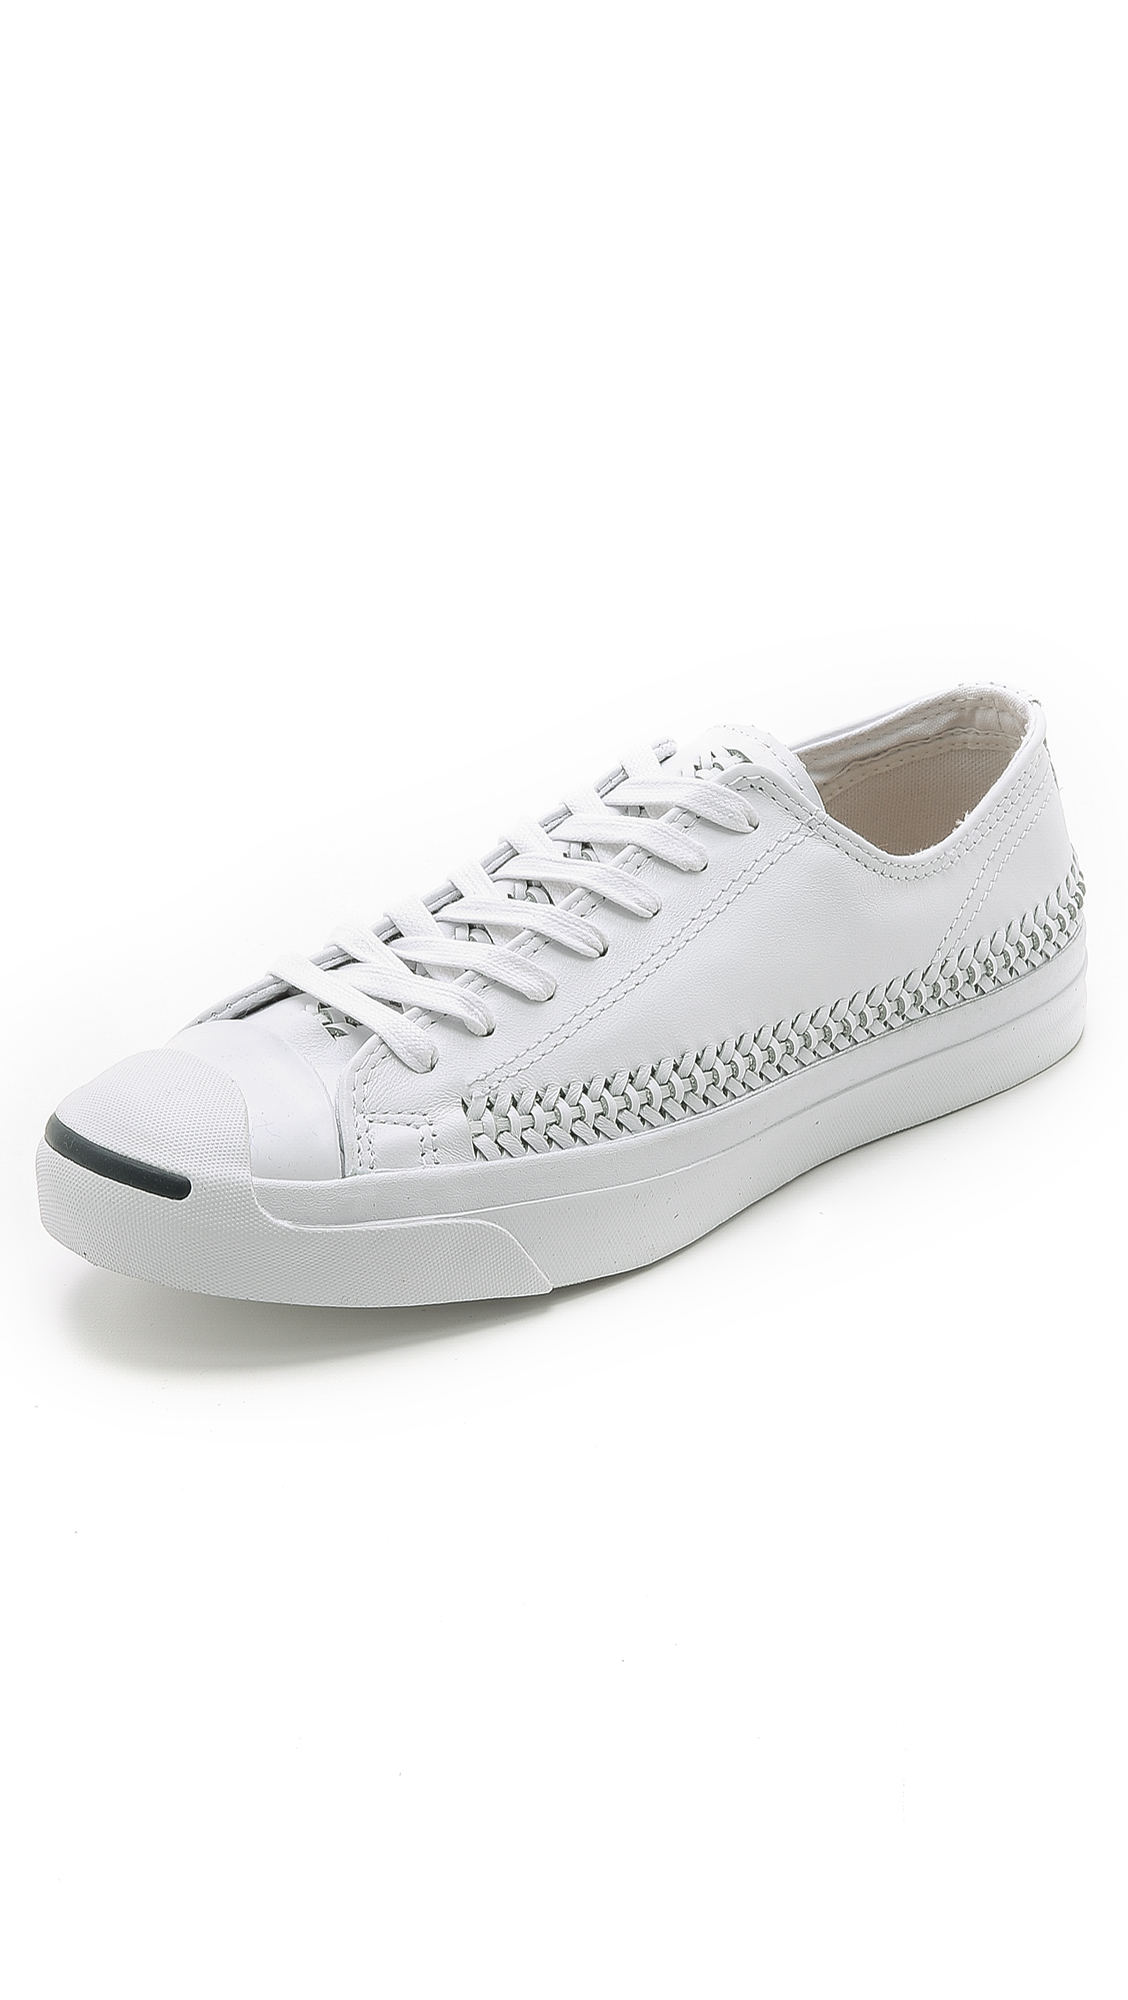 converse singles We would like you to have the most enjoyable experience on encaptivated singles,  then converse with other premier members knowing that they are also legitimate.